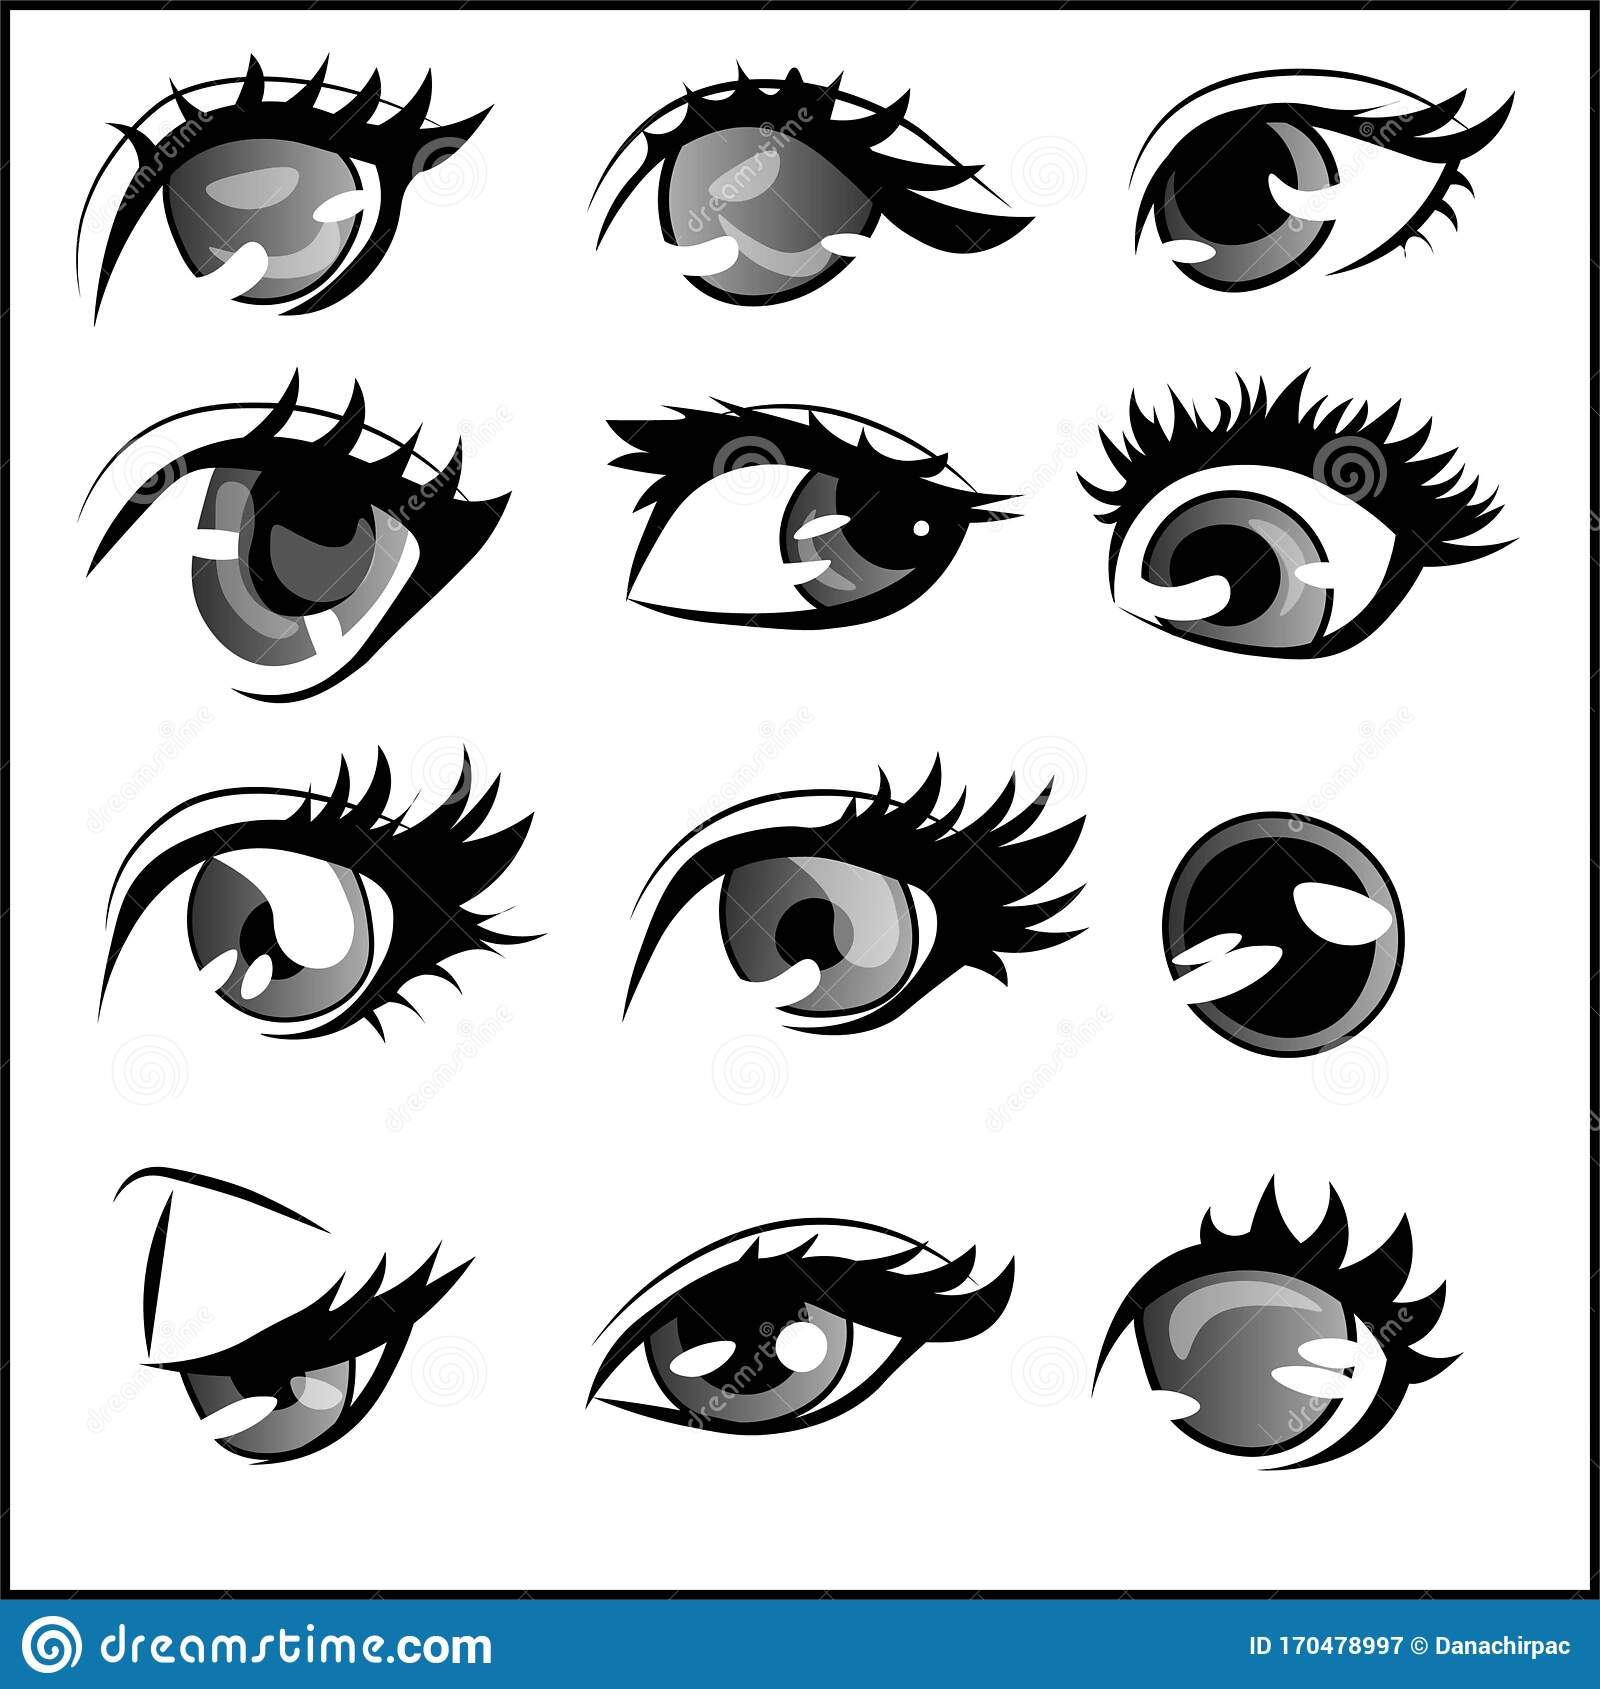 Different Styles And Shapes Of Anime Eyes Element Pack Set Of Twelve Ocular Drawings Stock Vector Illustration Of Black Drawings 170478997